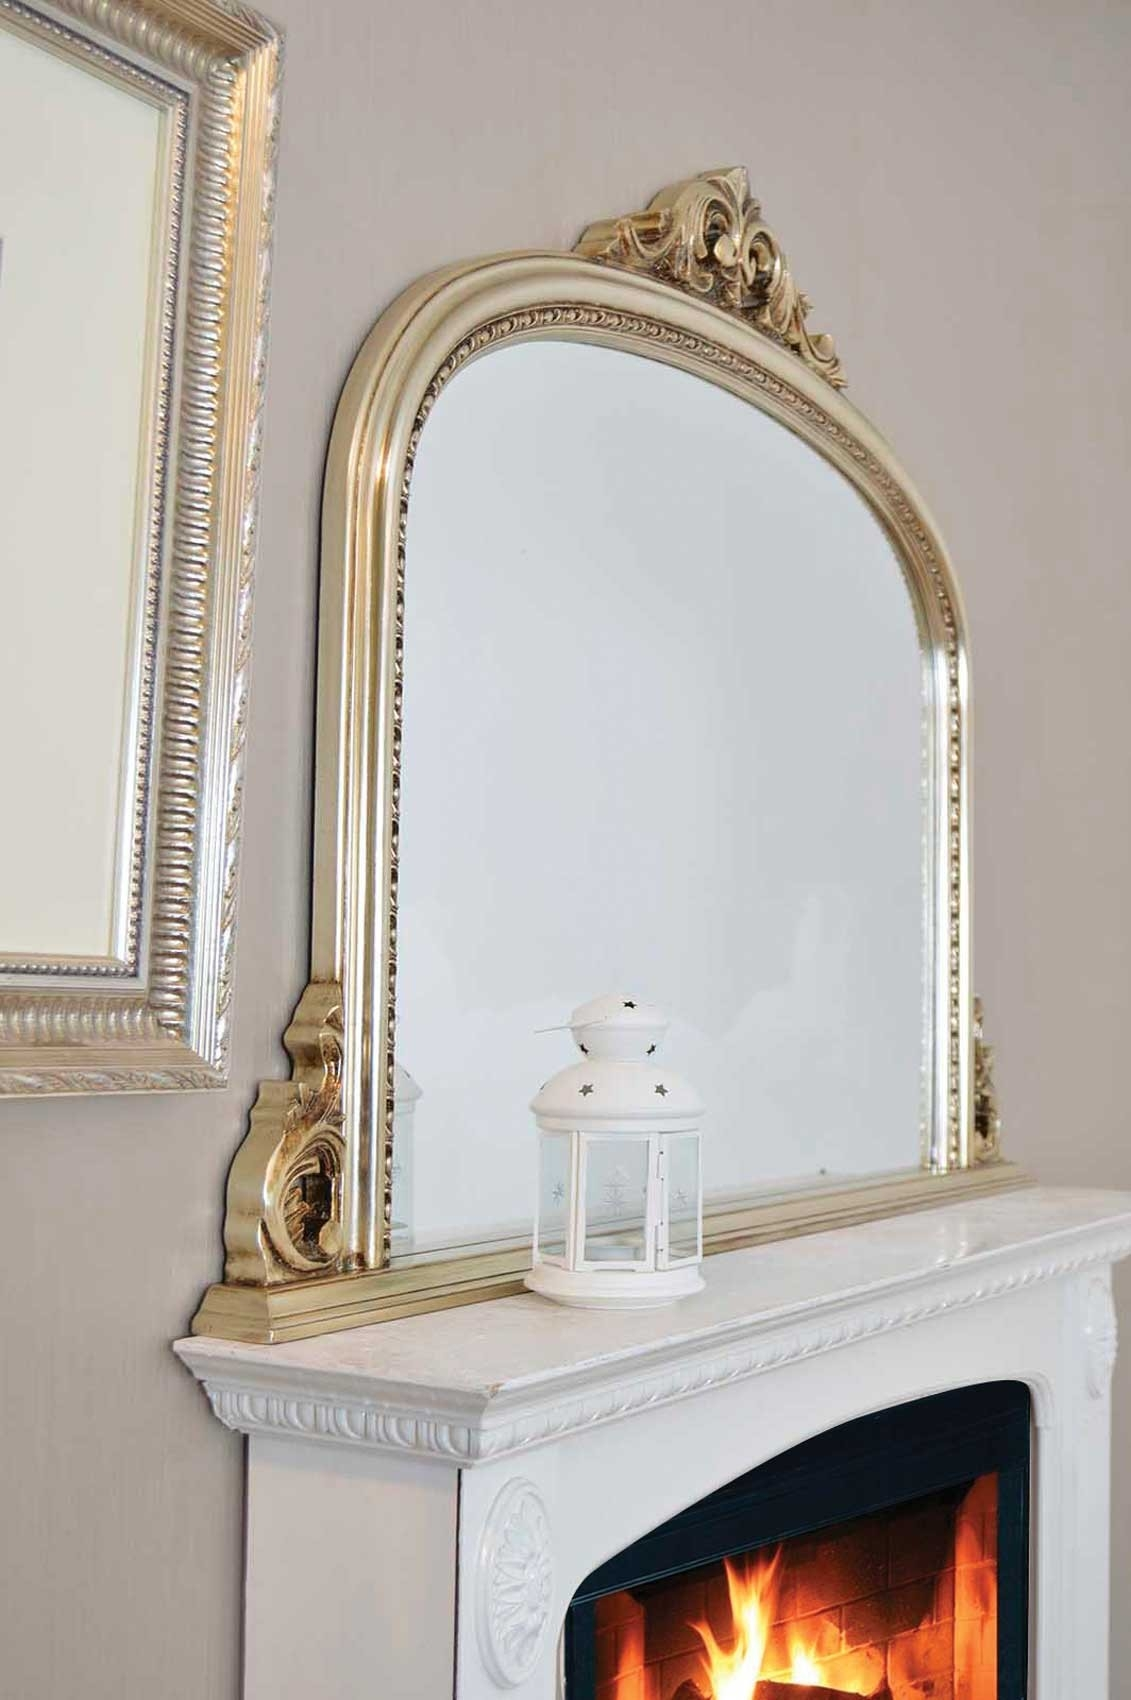 Large Champagne Silver Antique Over Mantle Wall Mirror 4ft2 X 3ft With Mirror For Mantle (Image 9 of 15)